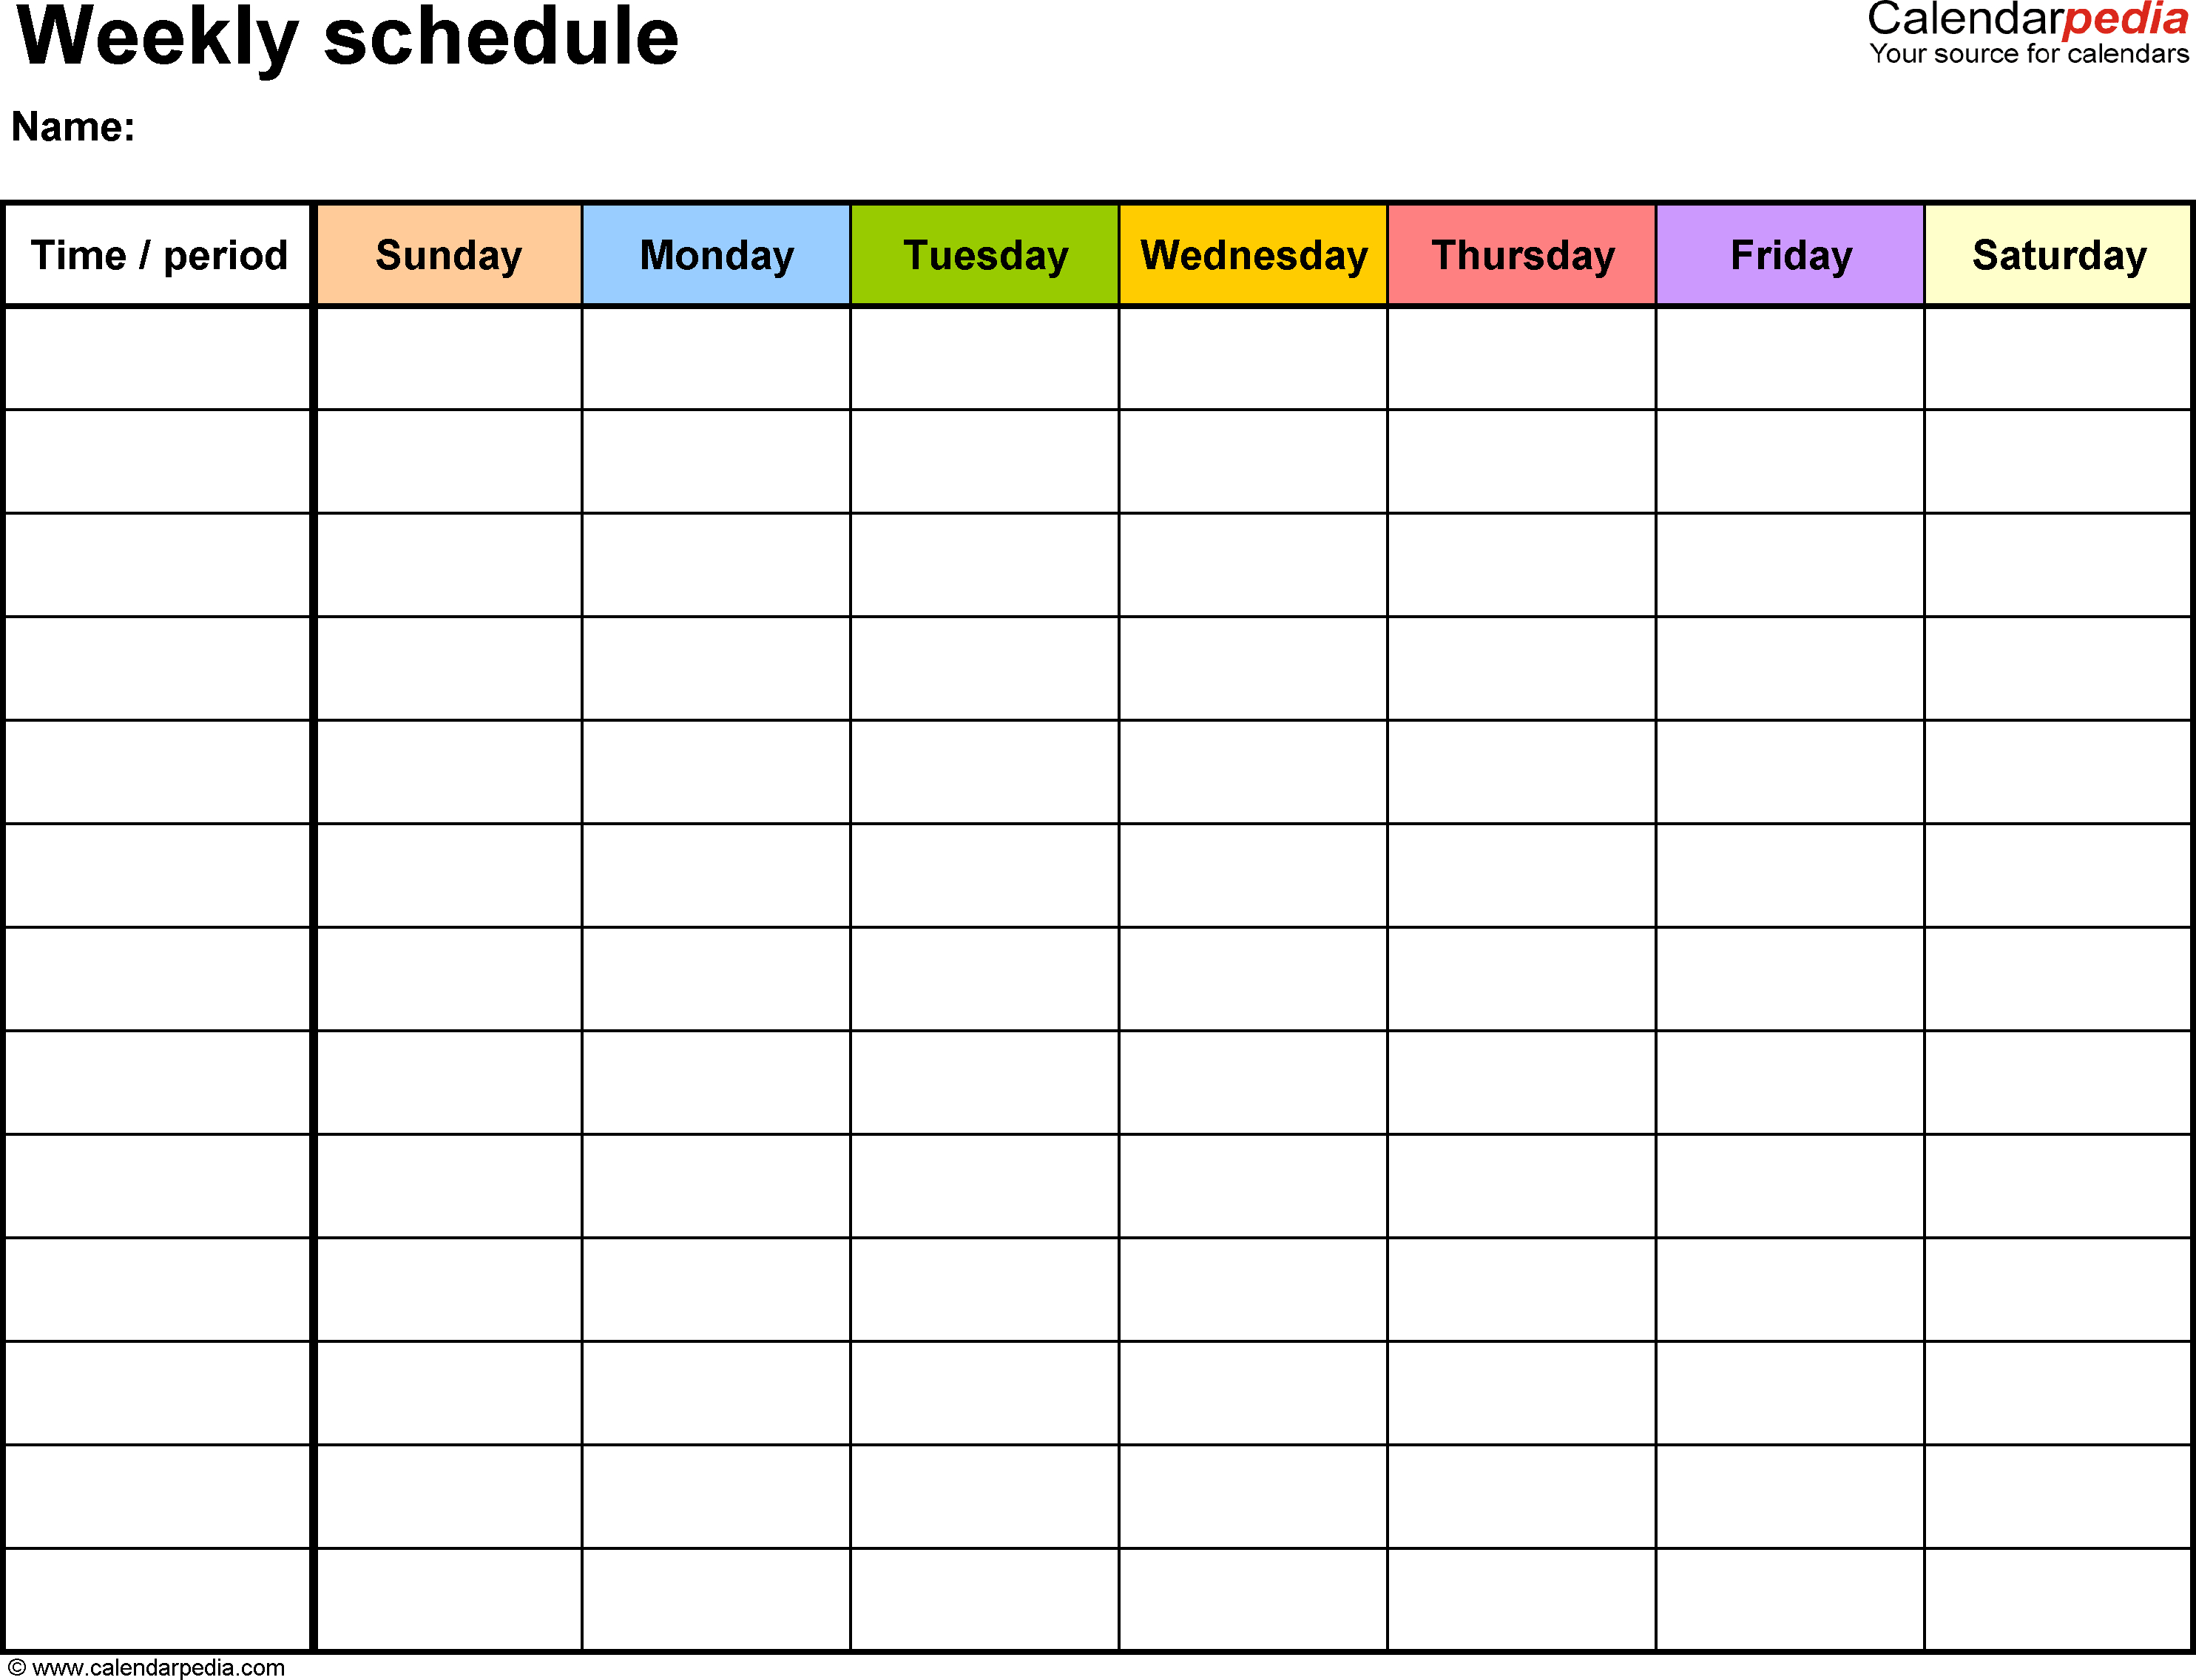 Free Weekly Schedule Templates For Pdf  18 Templates intended for Calendarpedia Weekly Schedule